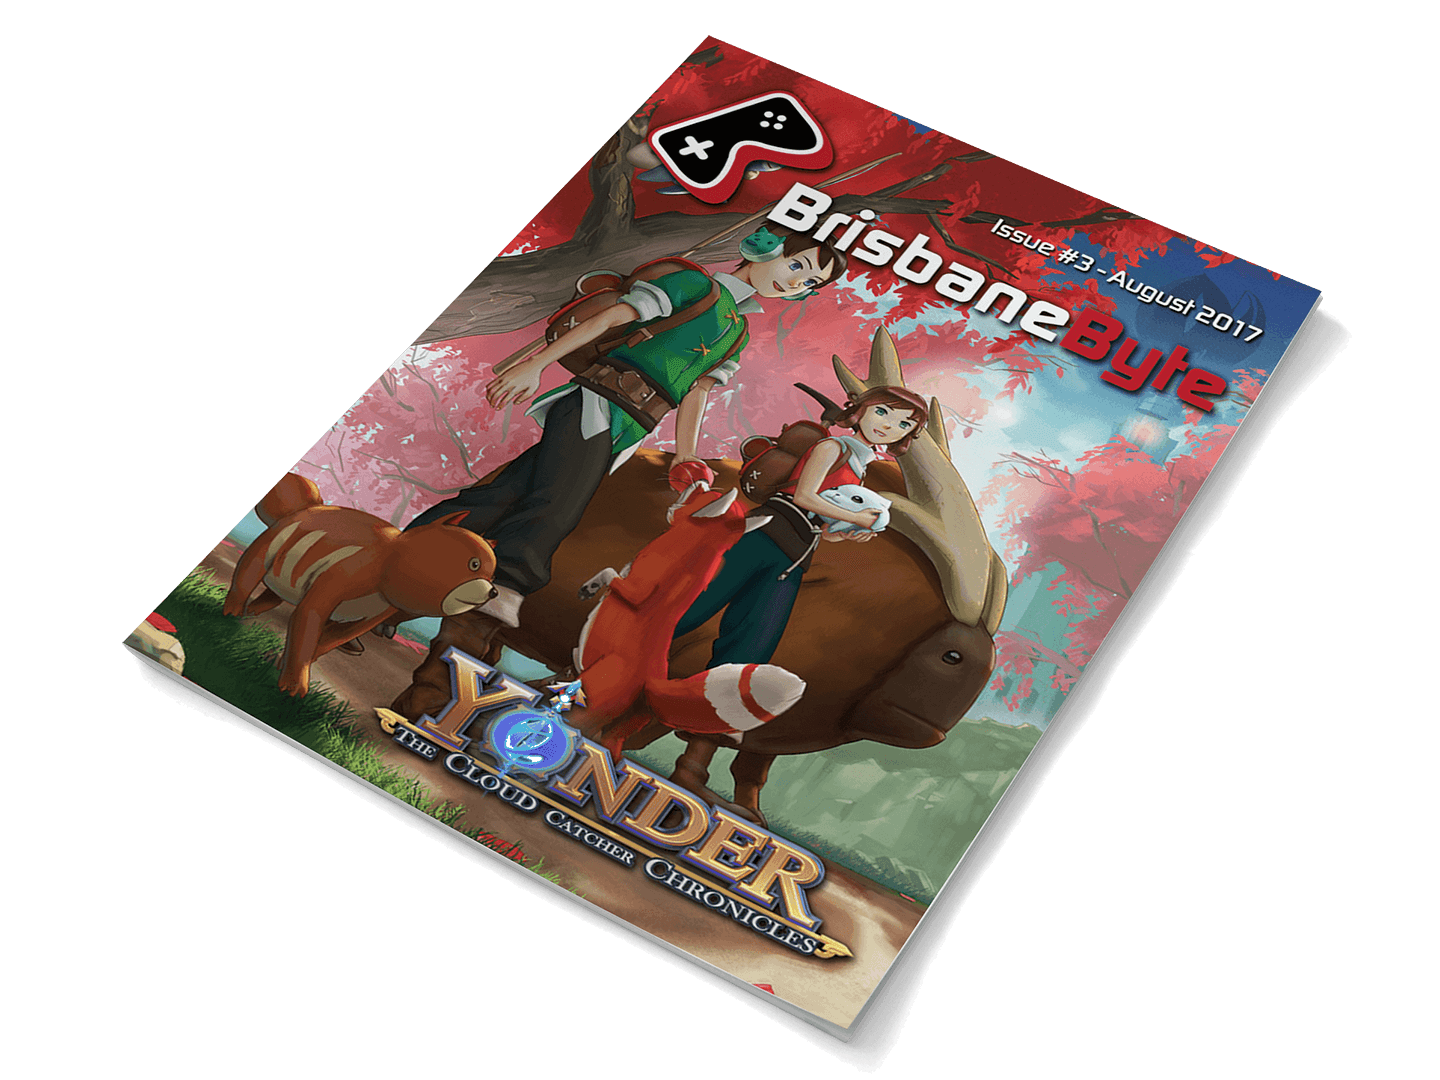 Issue #3 - August 2017